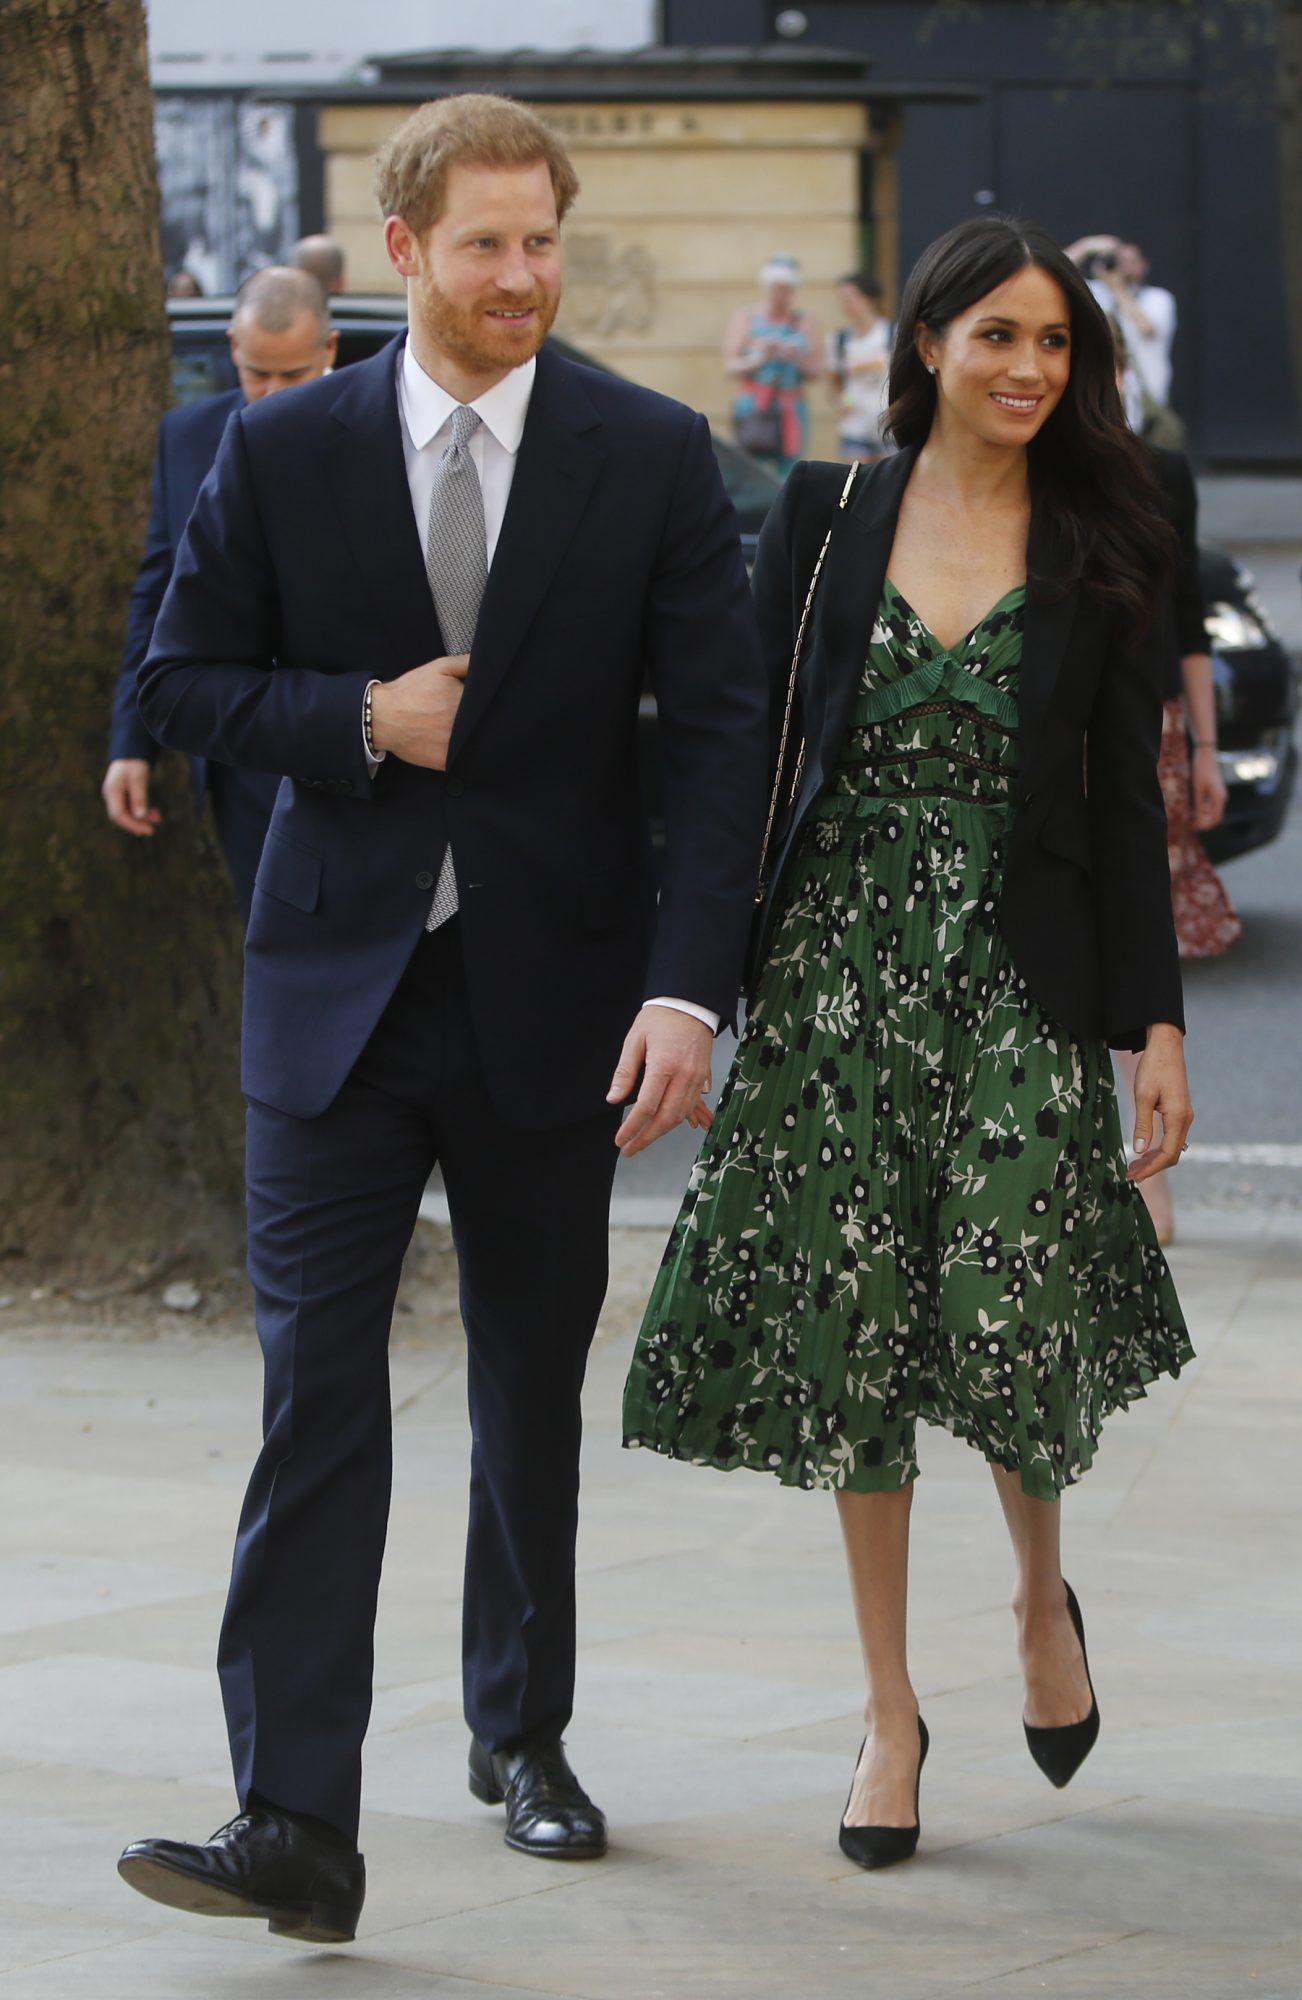 Harry and Meghan Wedding Lunch